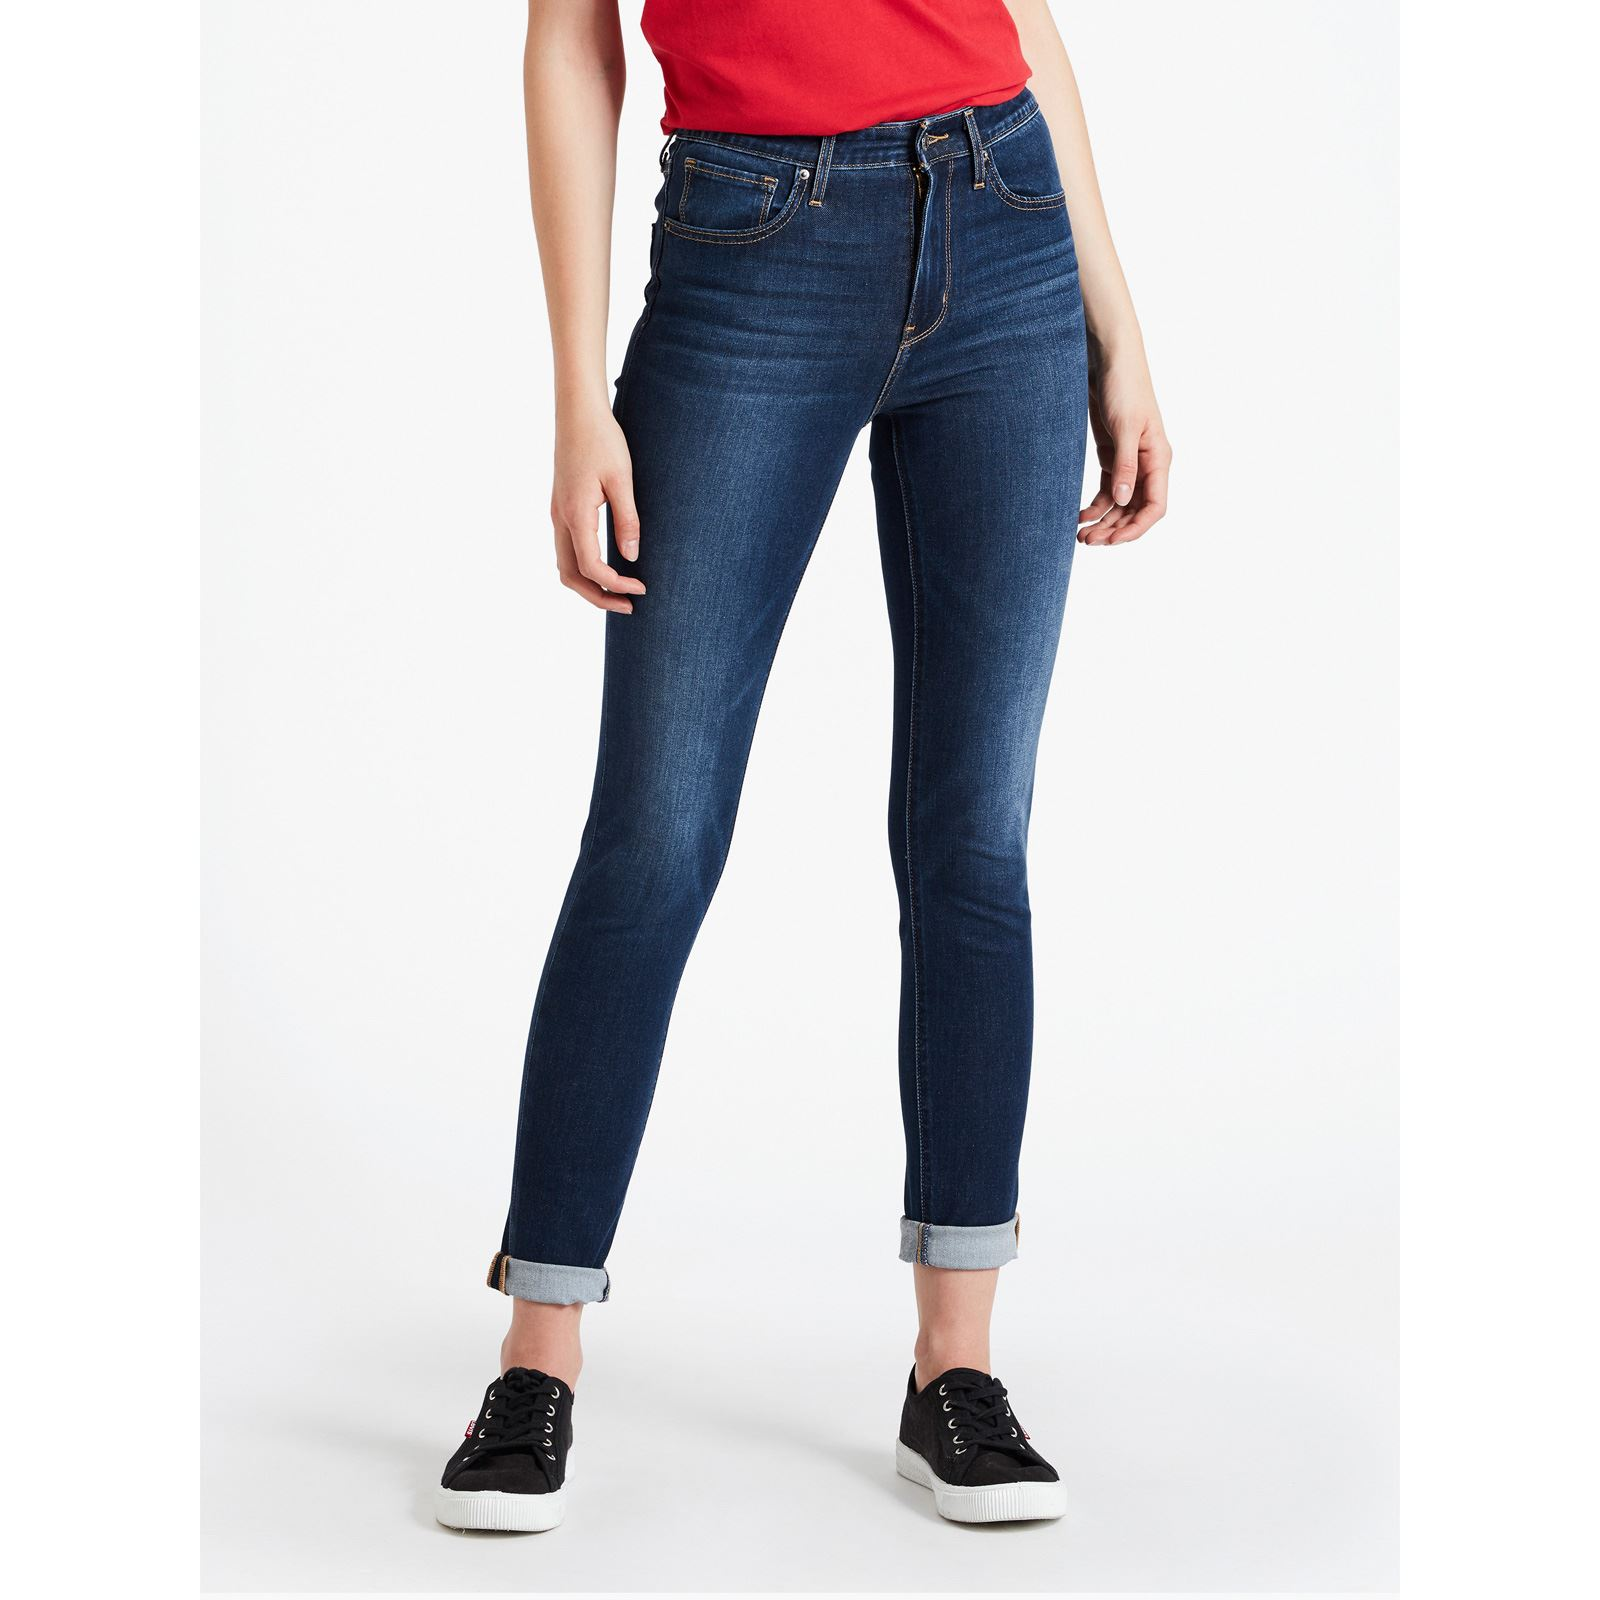 Skinny Brandalley Up For 721 Levi's Grabs Bleu aqP5WxY